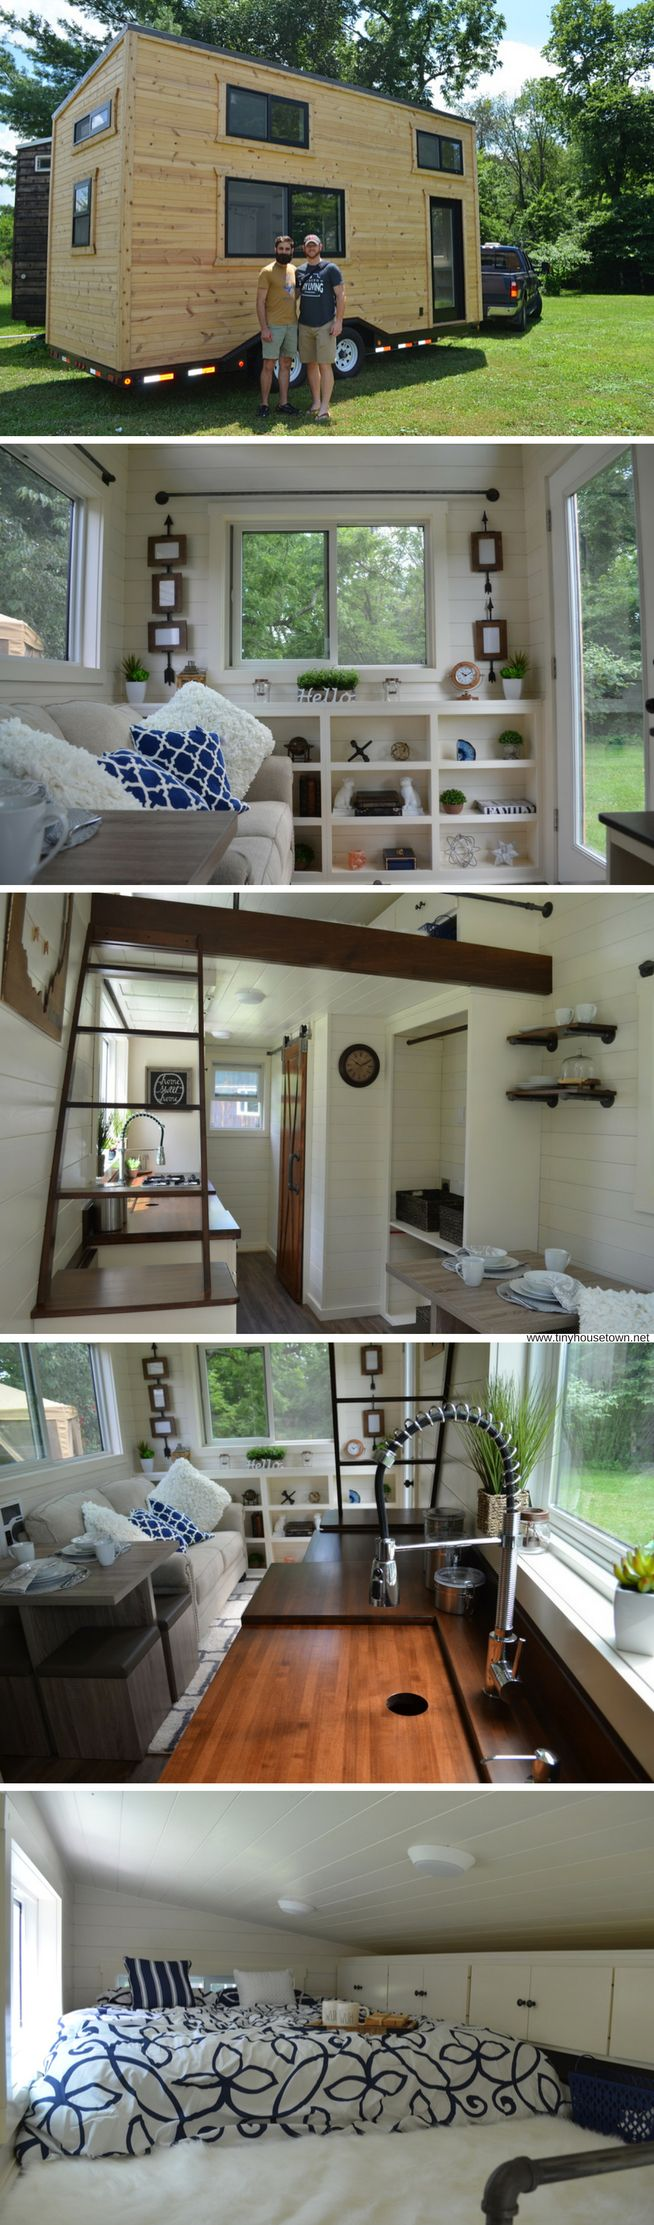 best 25 modern tiny house ideas only on pinterest tiny homes